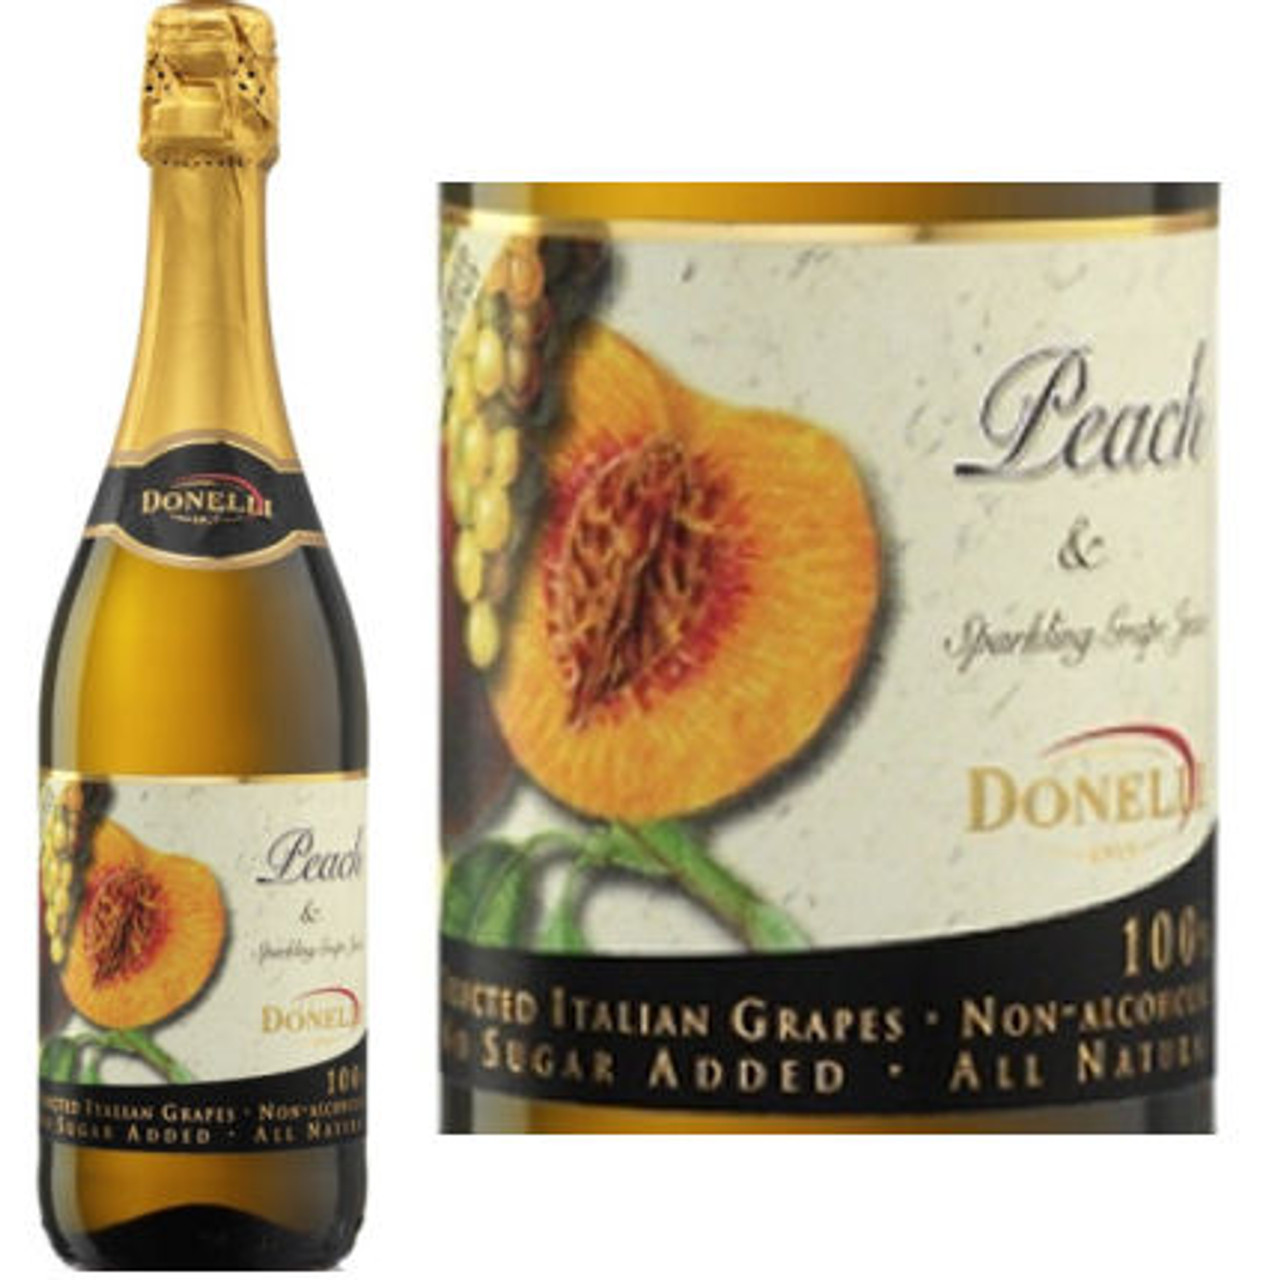 Donelli Peach Flavor Sparkling Grape Juice NA